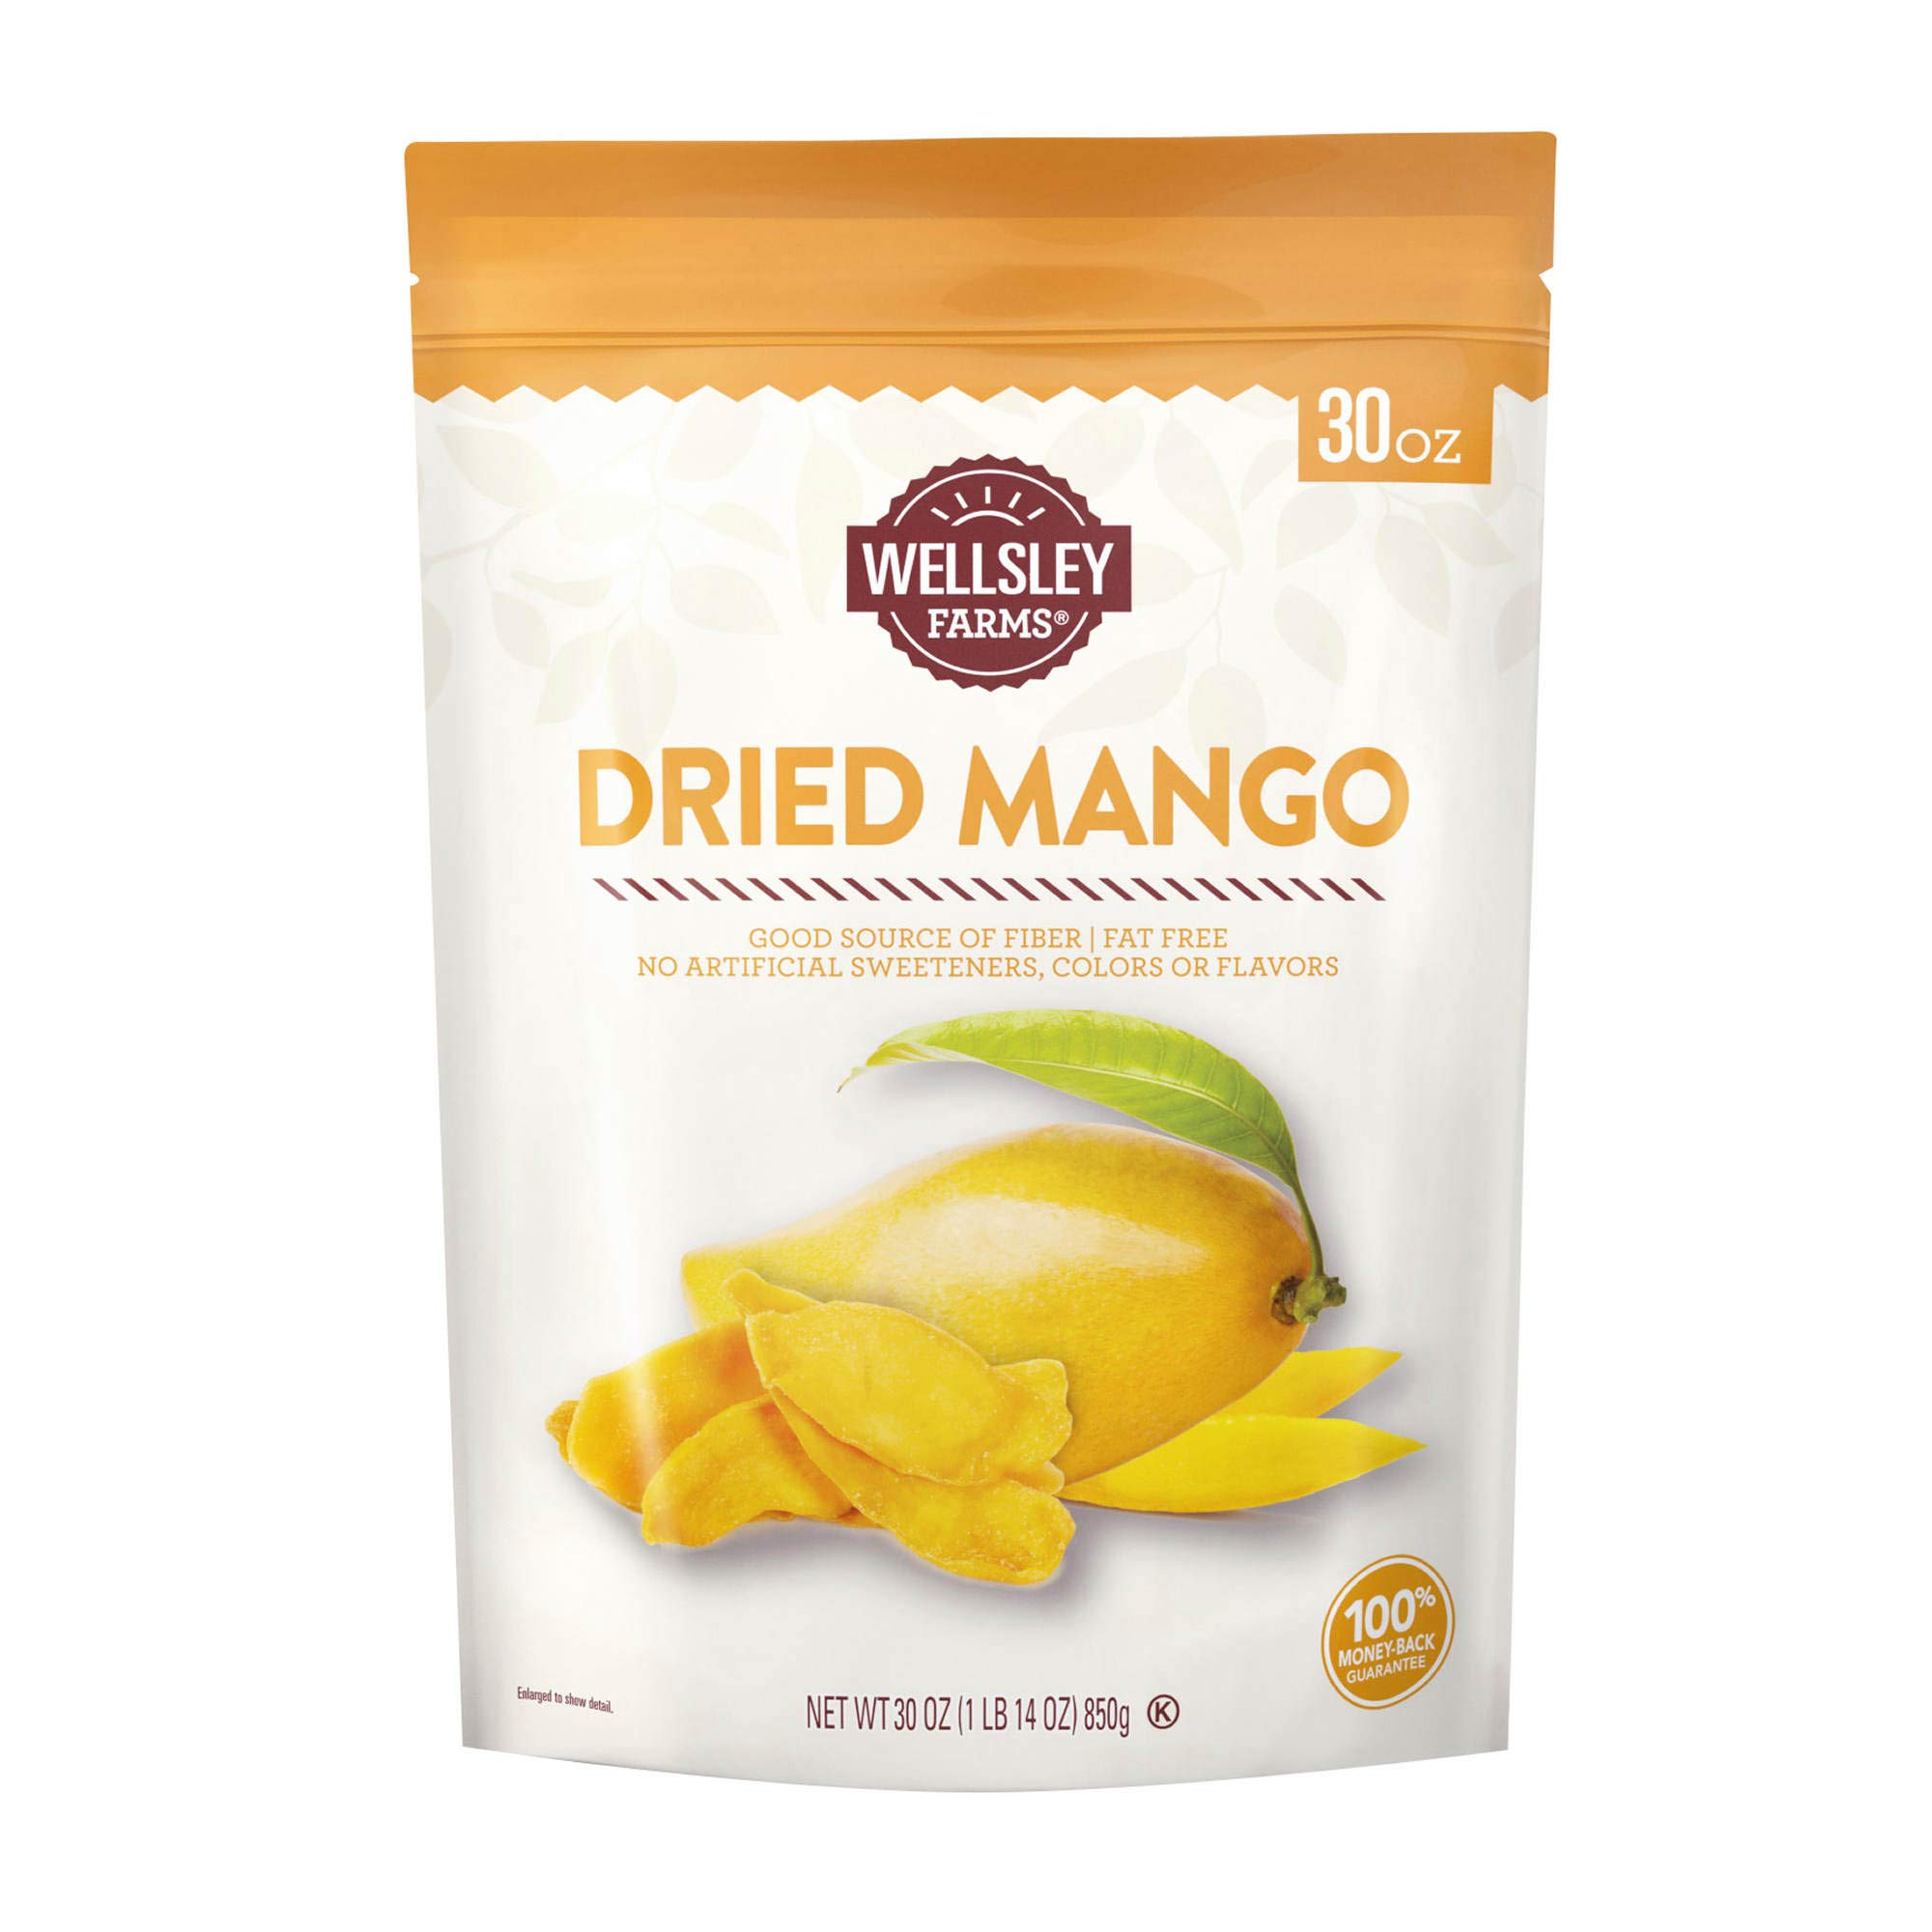 Wellsley Farms Dried Mango 30 Oz,, () by Wellsley Farms